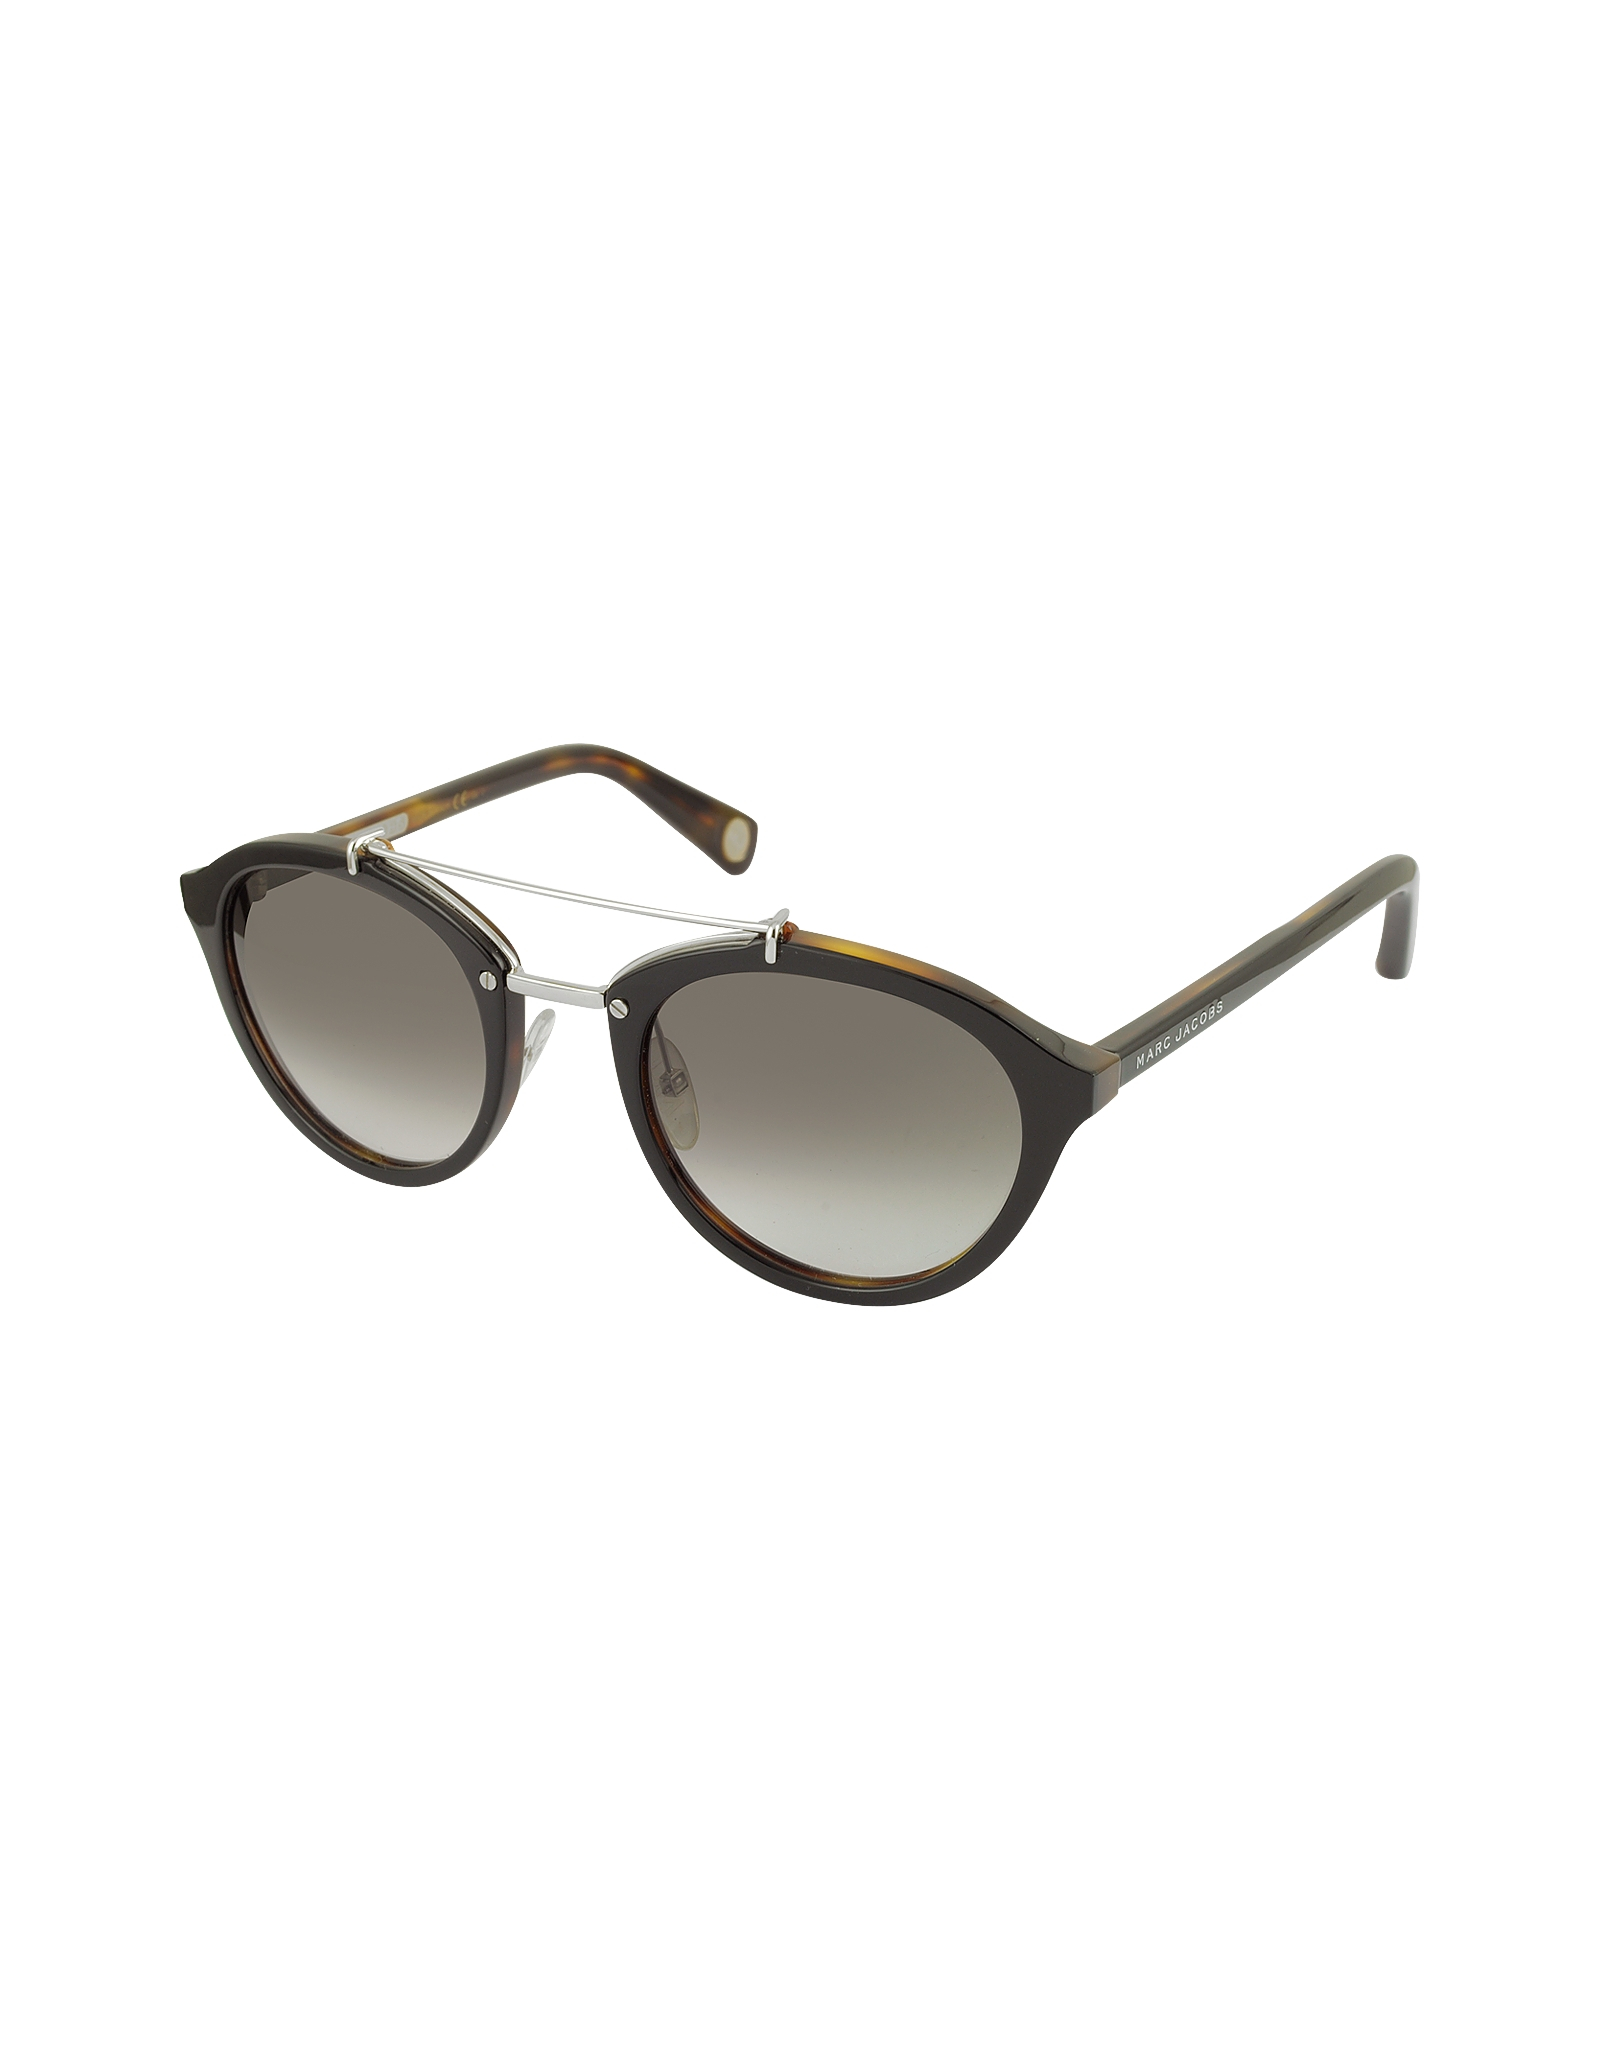 0a8727b03811 Lyst - Marc Jacobs Mj 471 s Acetate And Silver Metal Round ...